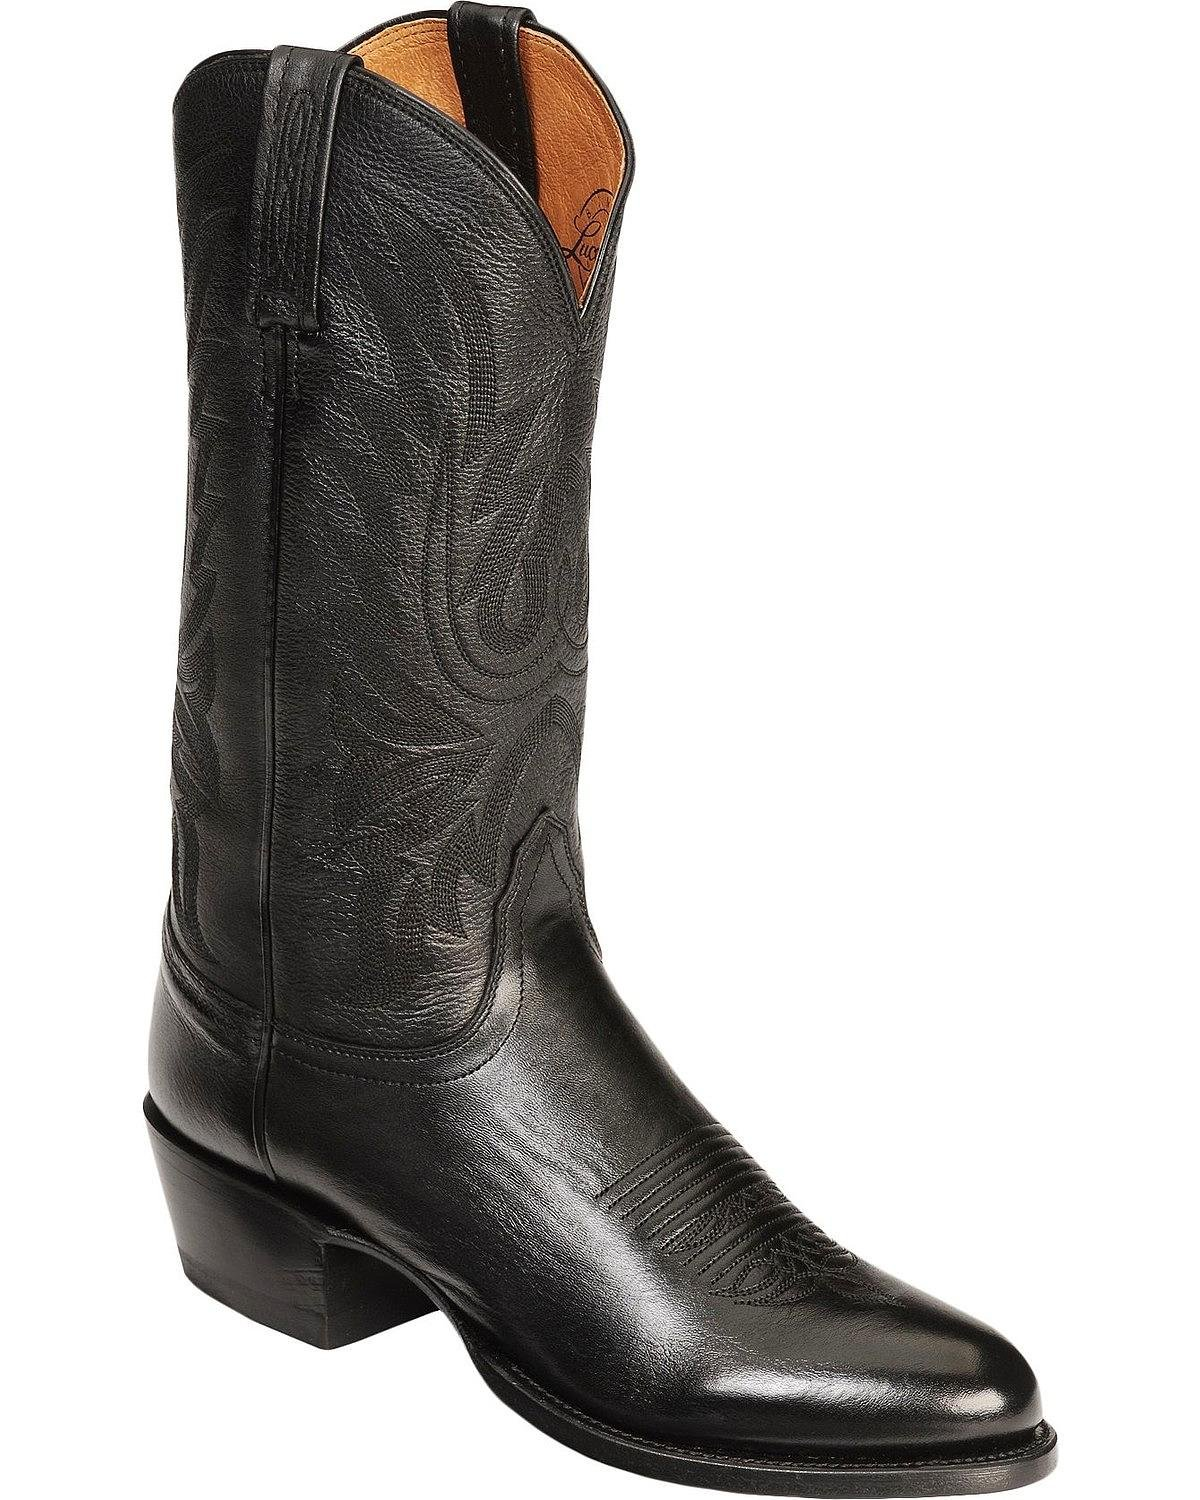 Lucchese Bootmaker Men's Carso-blk Lonestar Calf Cowboy Riding Boot, Black, 13 D US